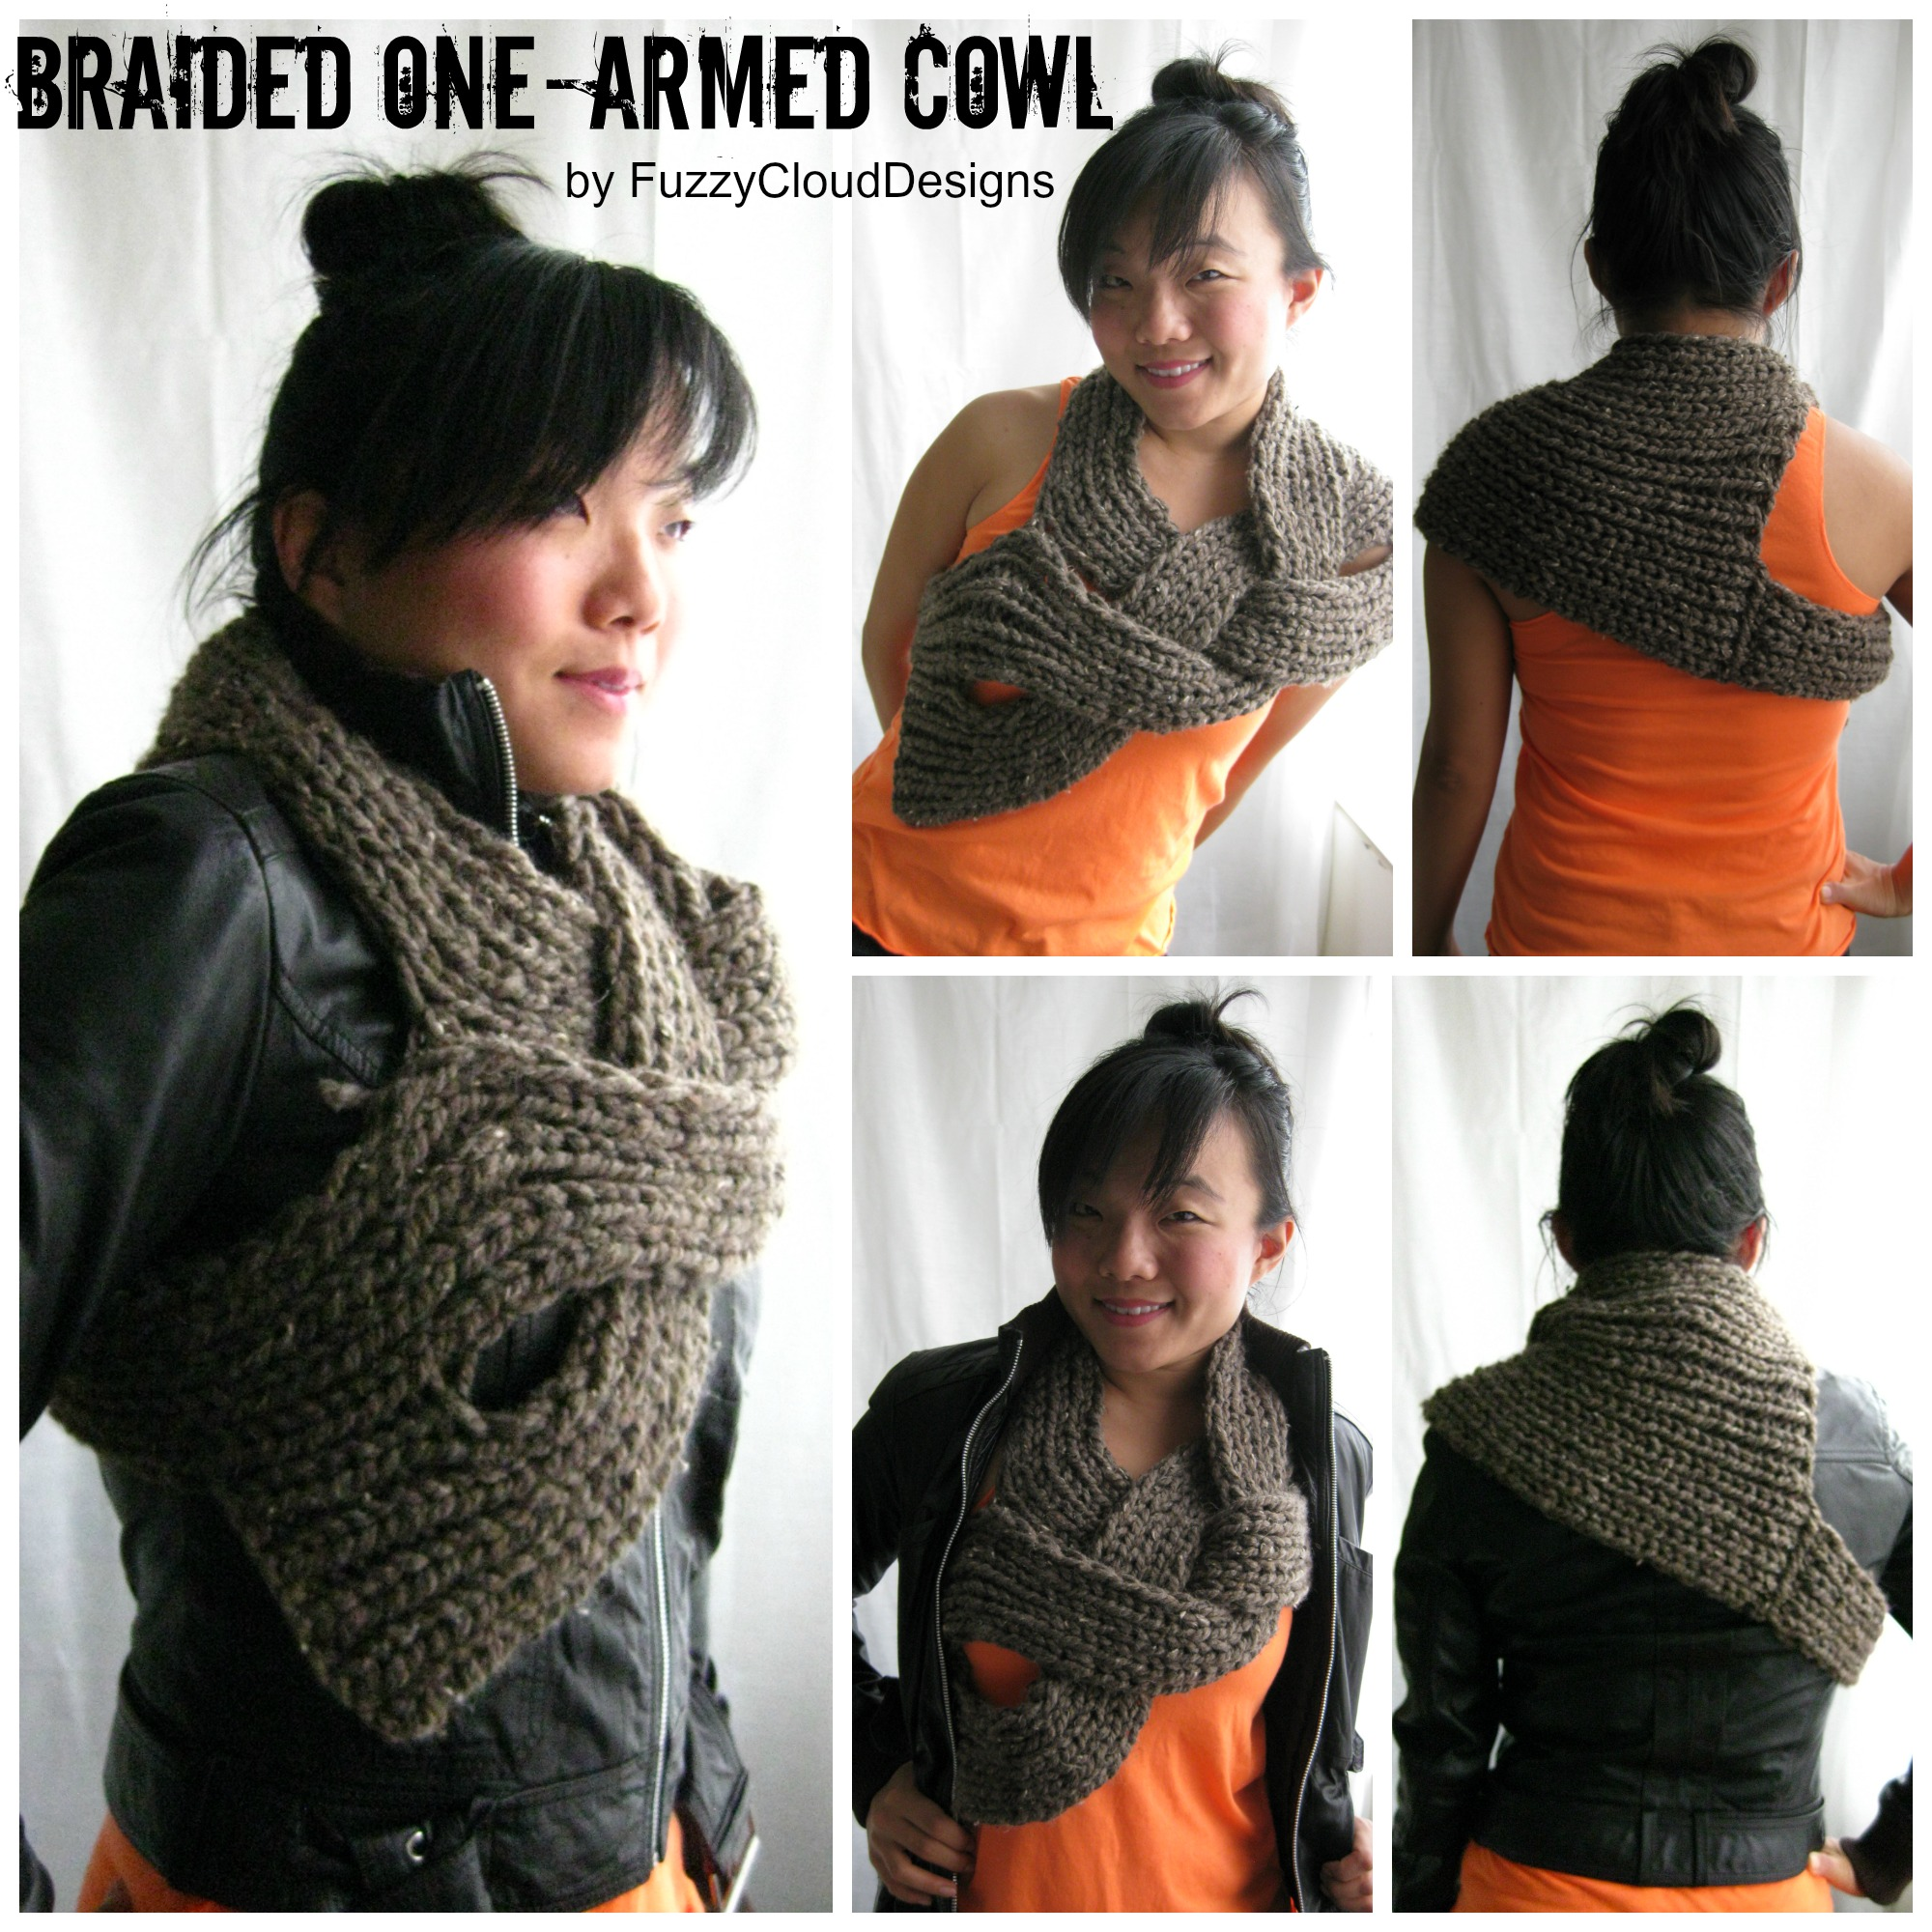 Braided One-Armed Cowl by FuzzyCloudDesigns